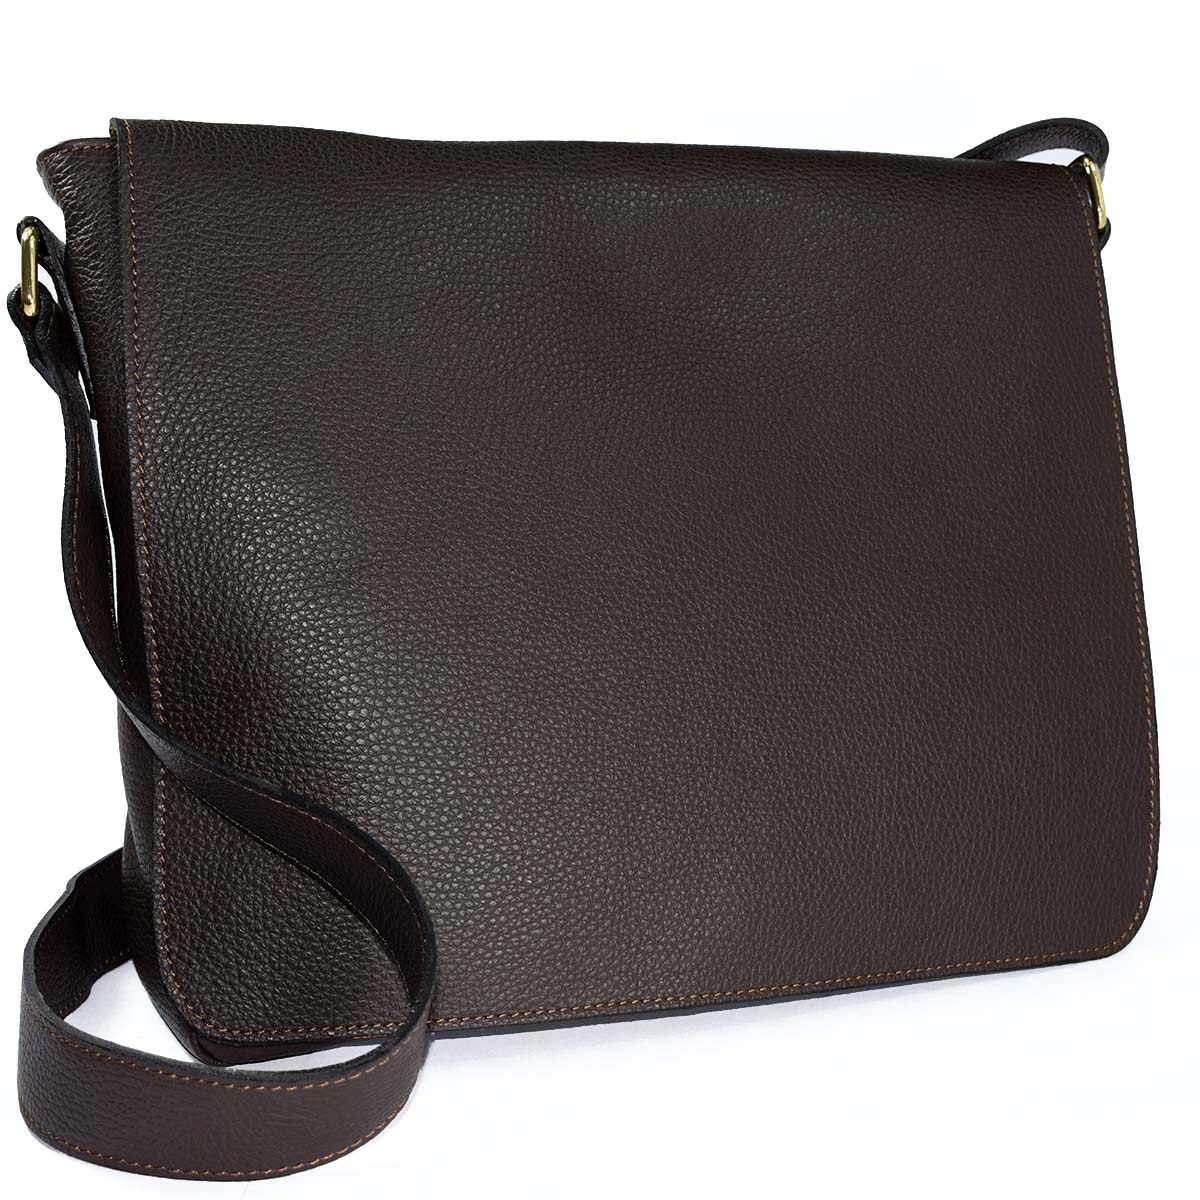 12739 messanger bag with big flap by Bottega Fiorentina